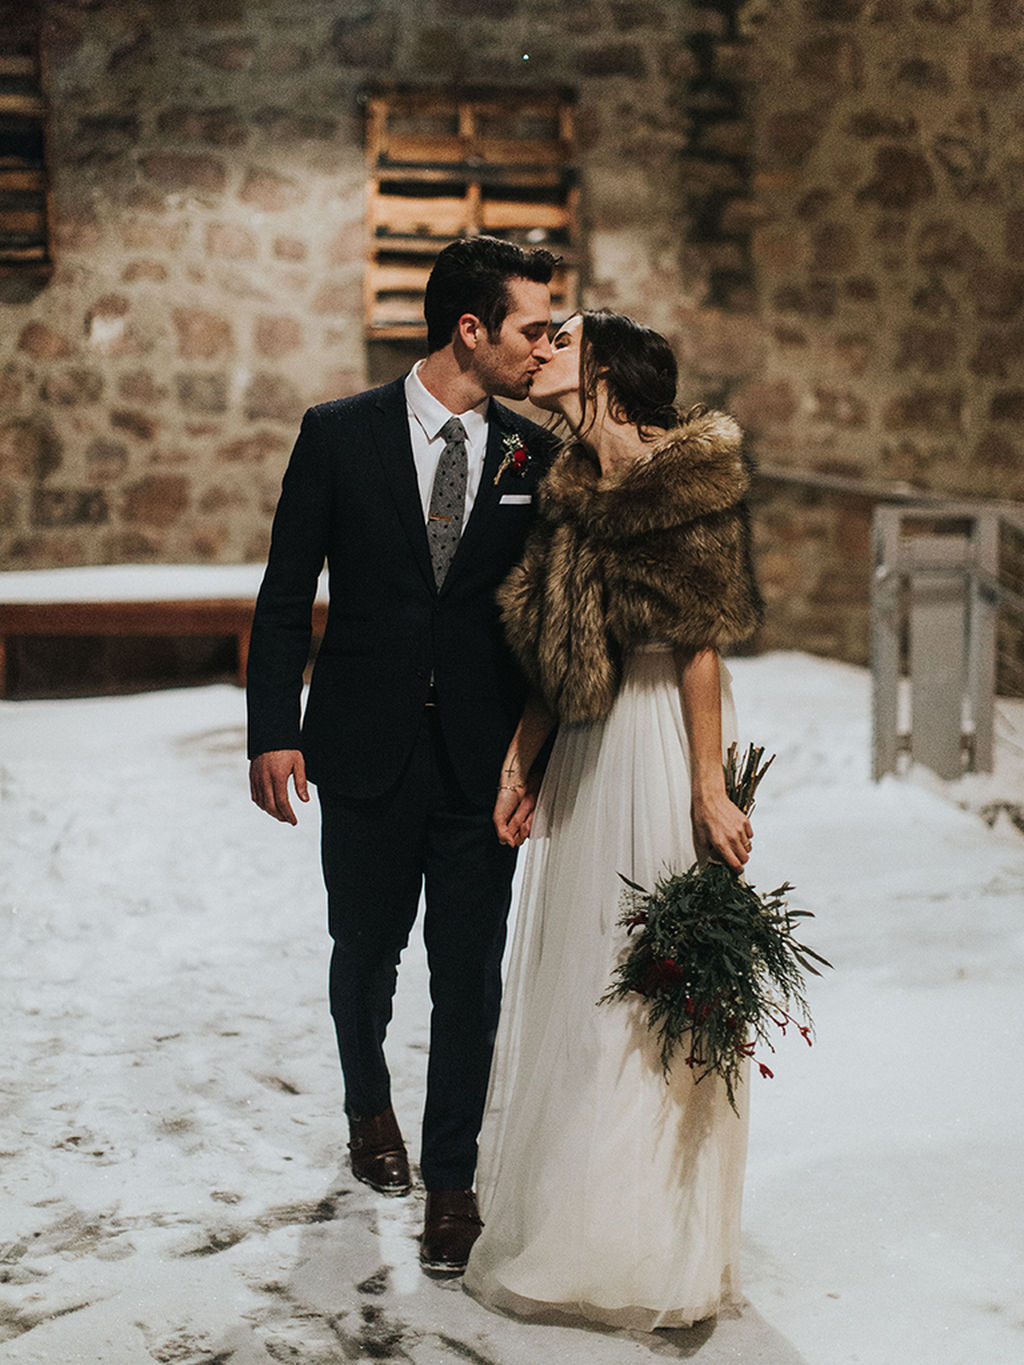 the perfect winter wedding gown with furs to keep bride warm